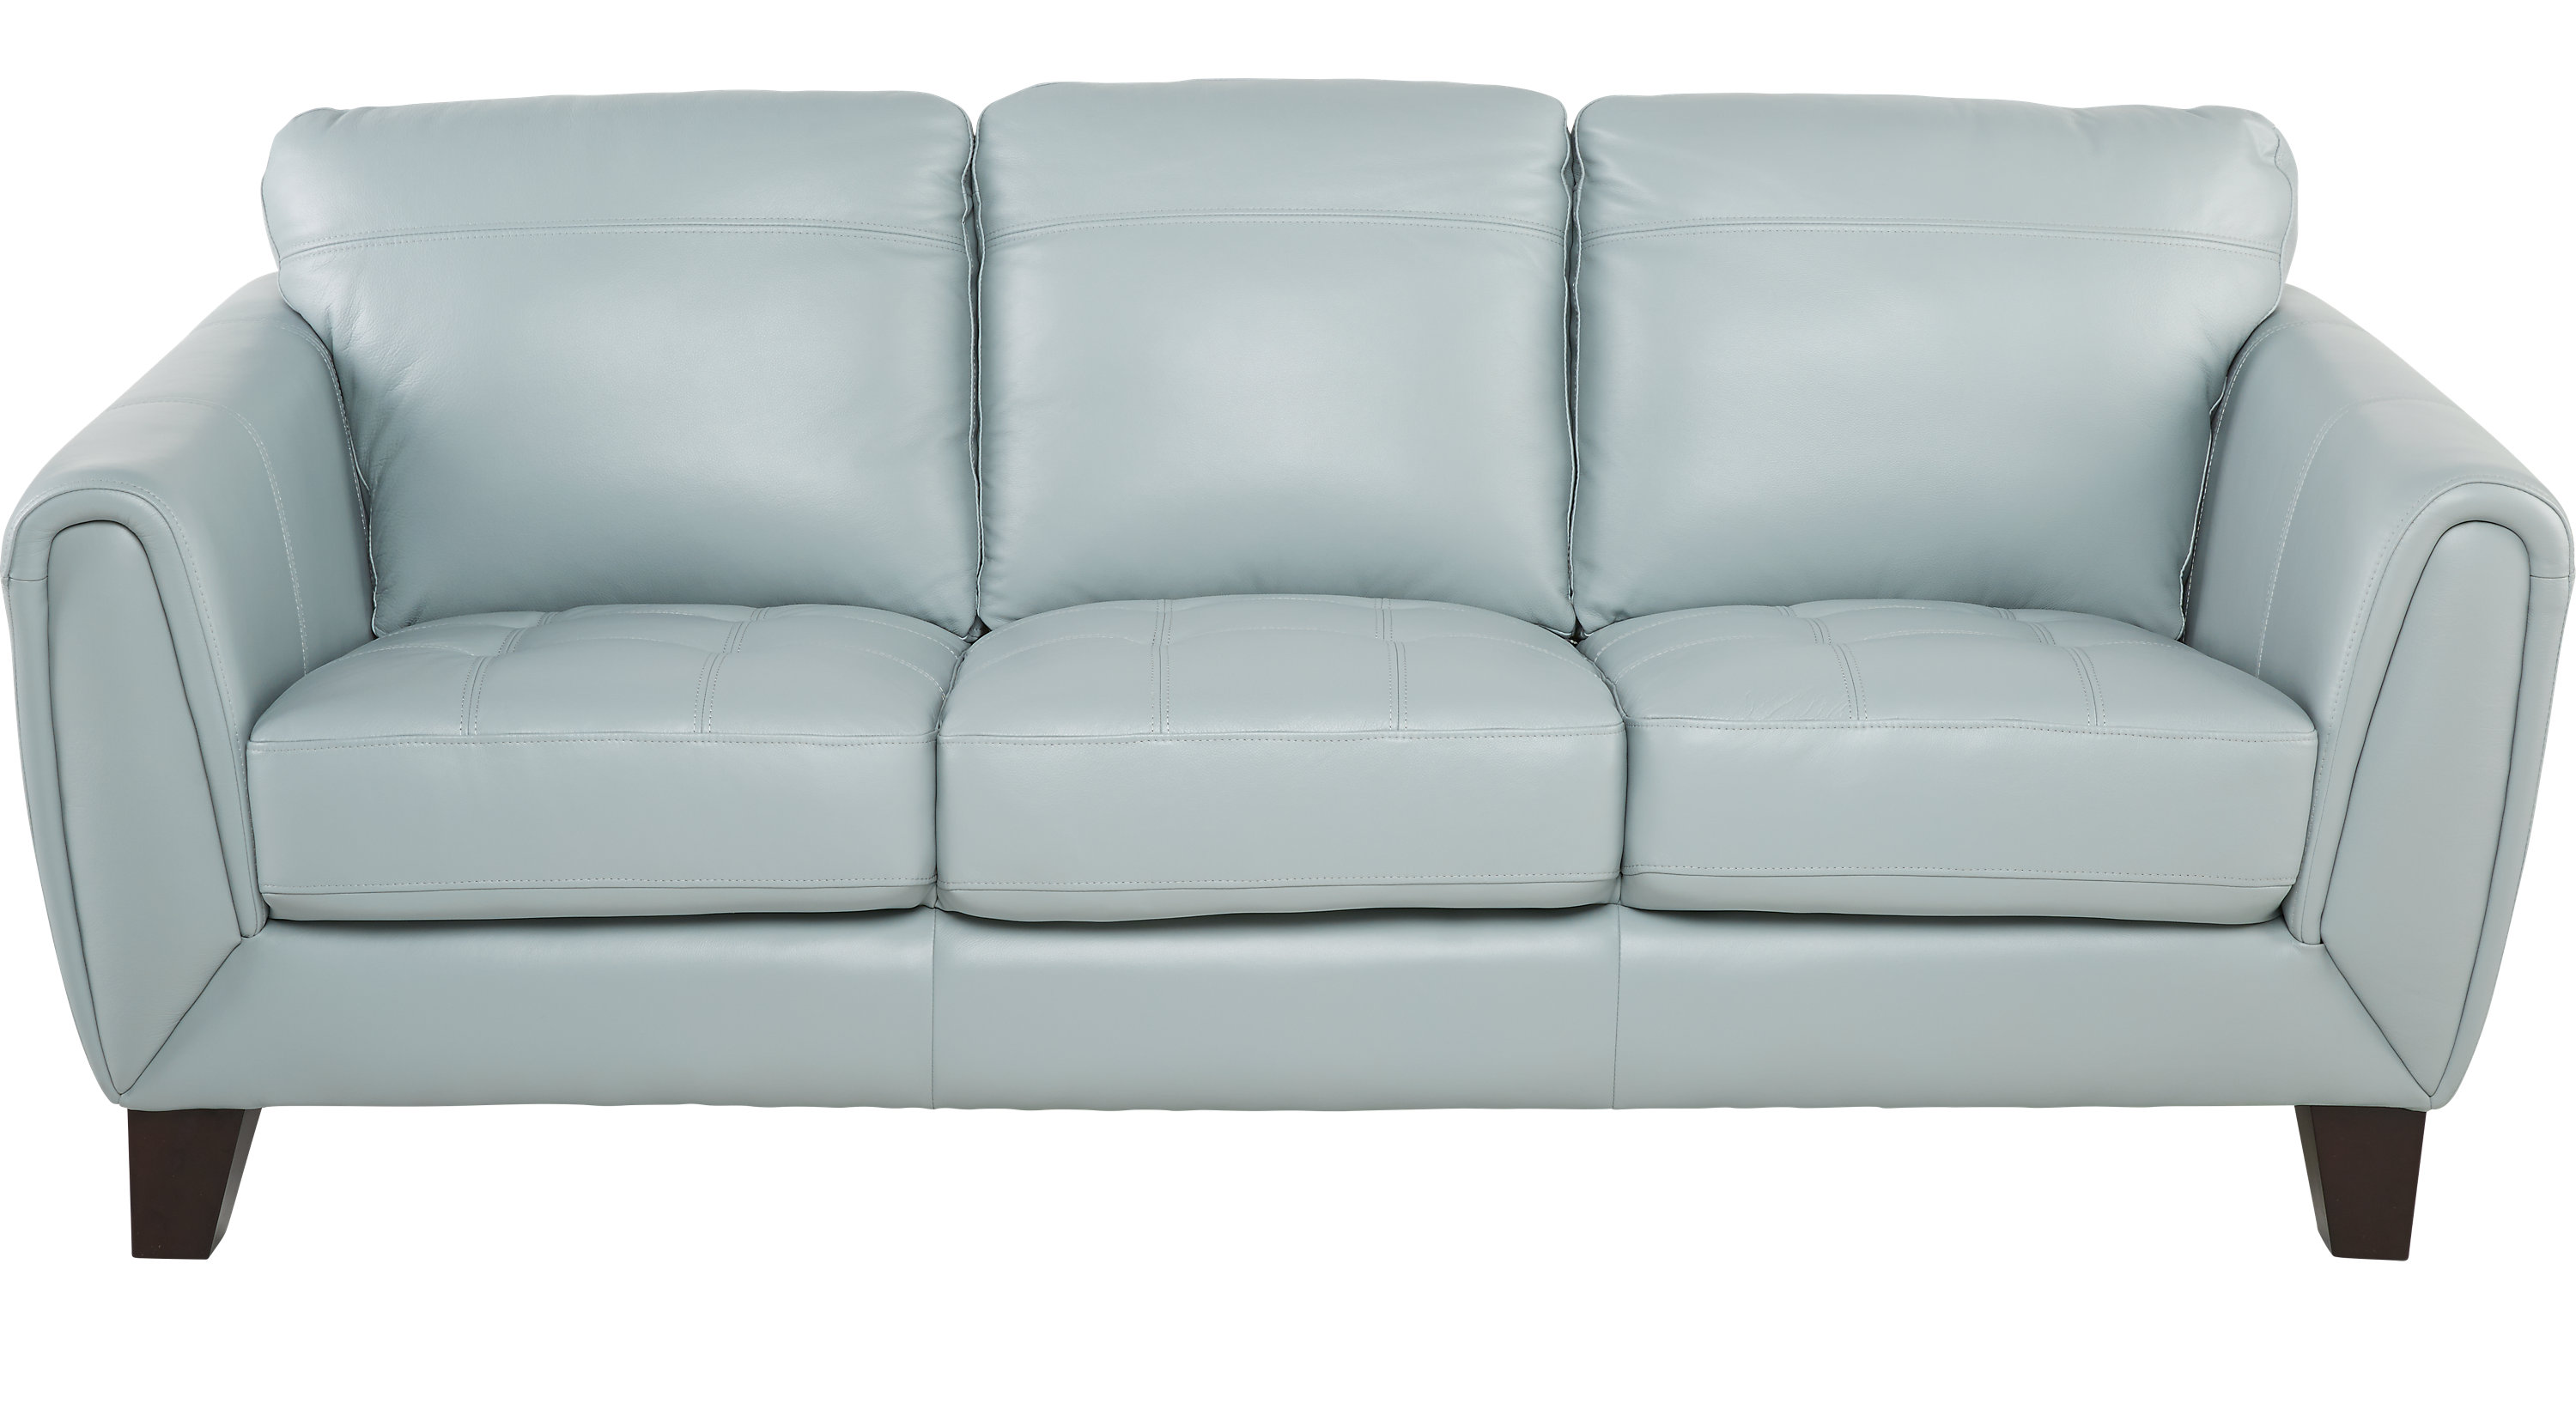 $777.00 - Livorno Aqua (light blue) Leather Sofa - Classic